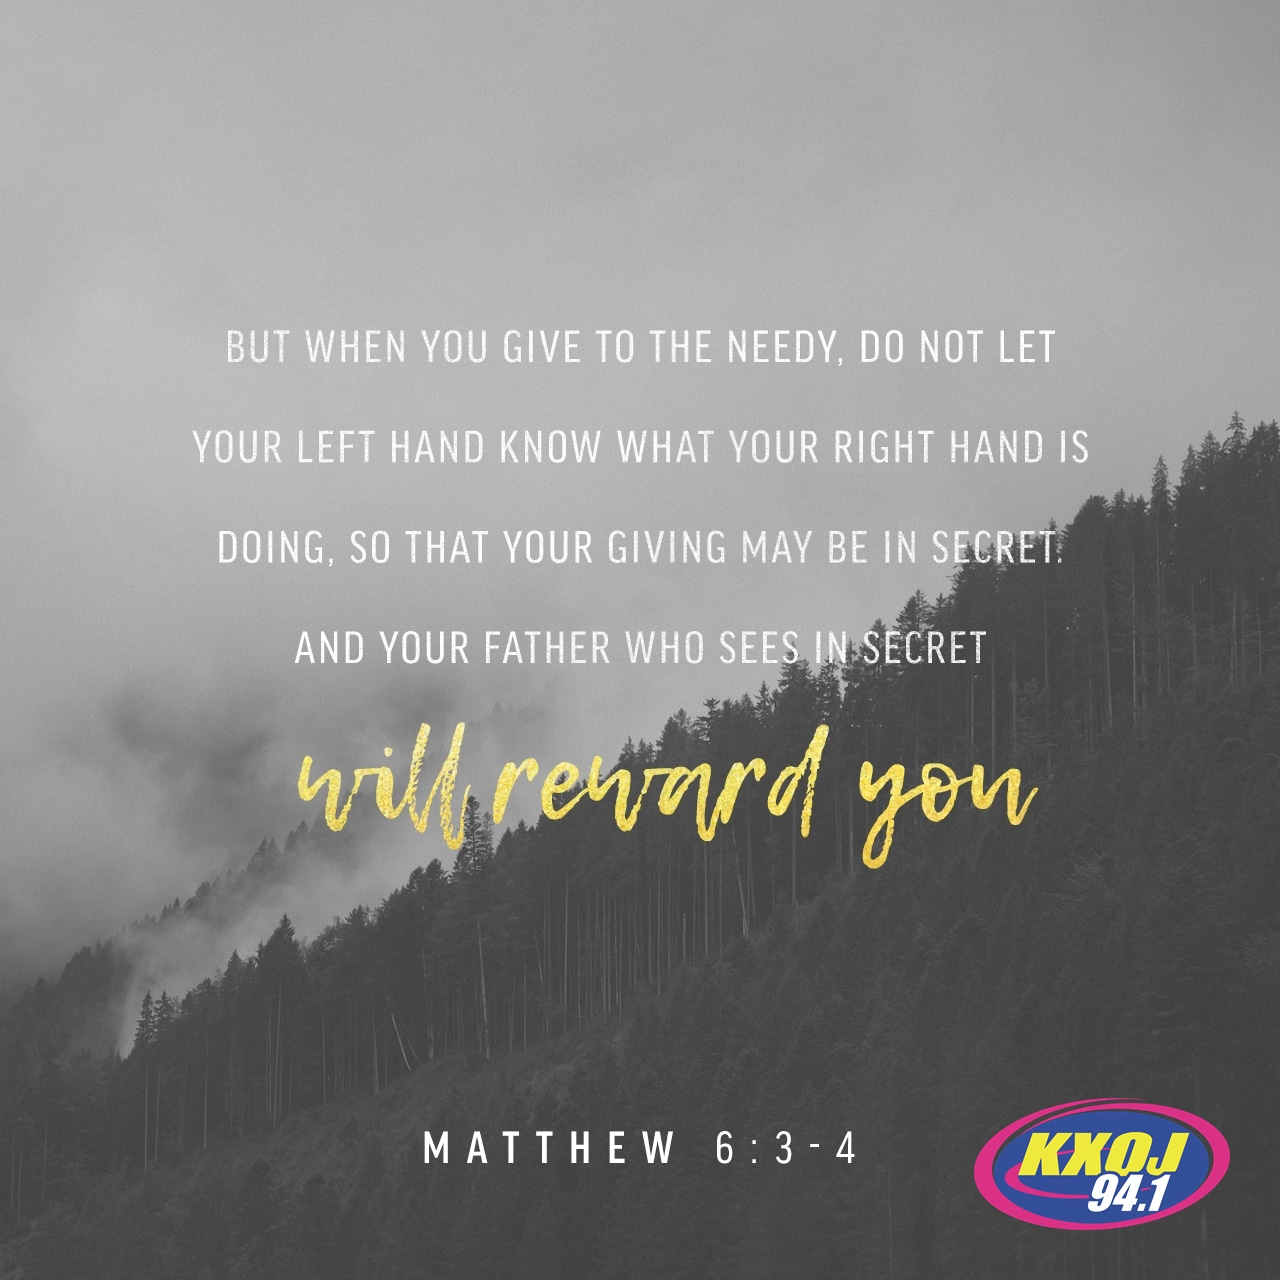 May 18th - Matthew 6:3-4